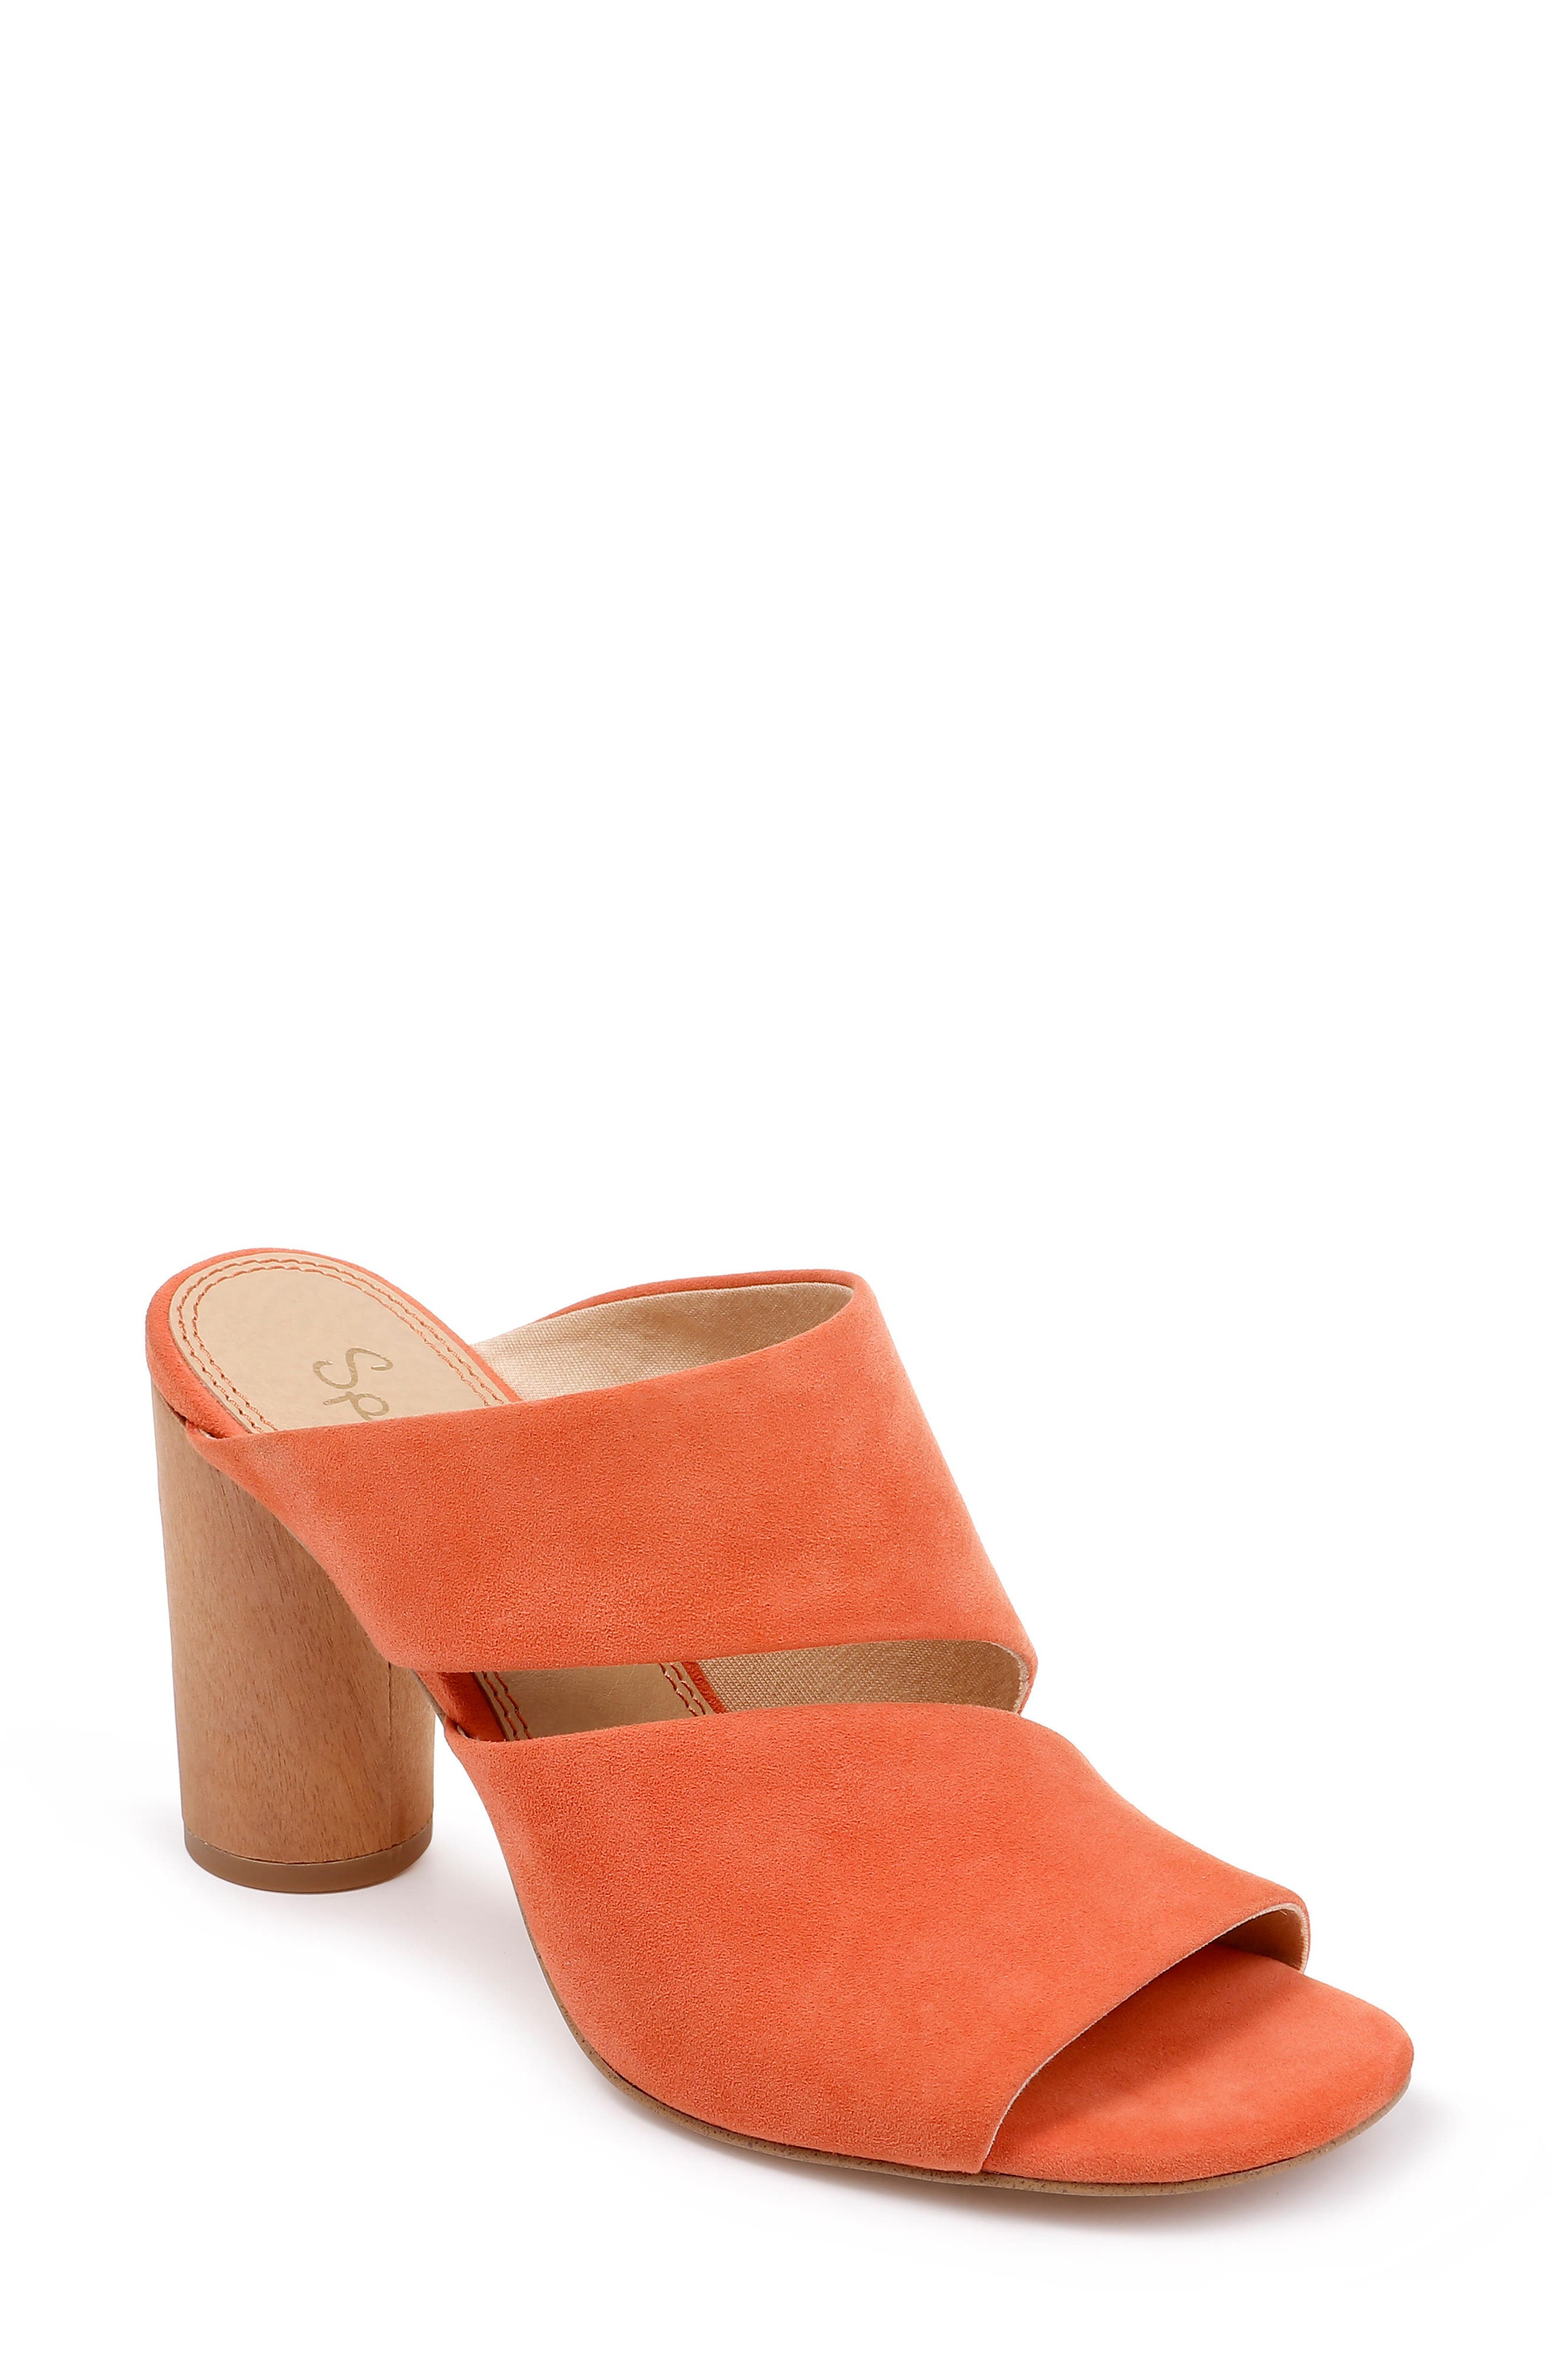 Serenade Sandal, Main, color, ORANGE SUEDE